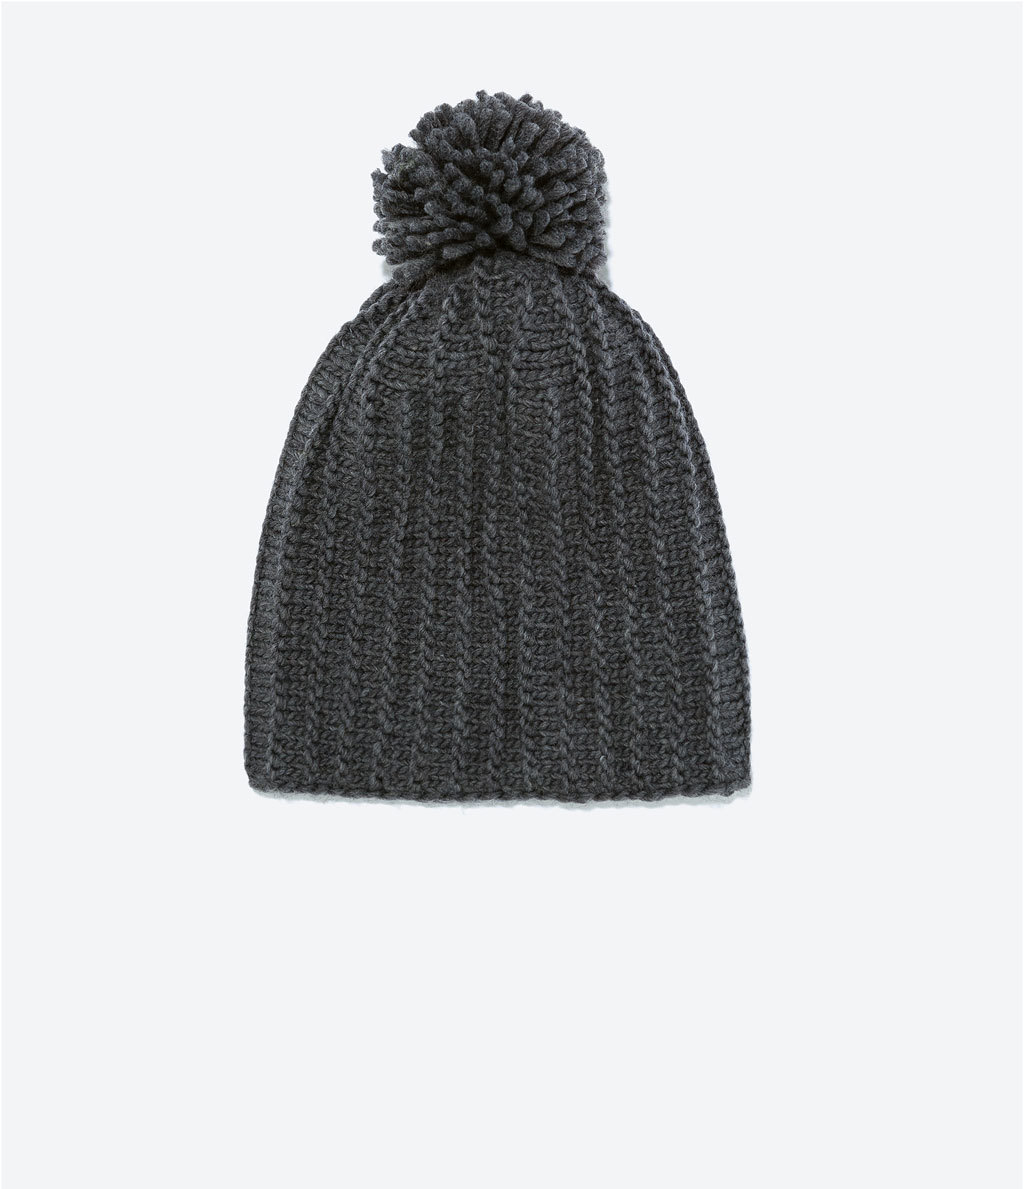 Knitted Hat - predominant colour: dark green; occasions: casual; style: bobble; size: standard; material: knits; pattern: plain; embellishment: pompom; season: a/w 2014